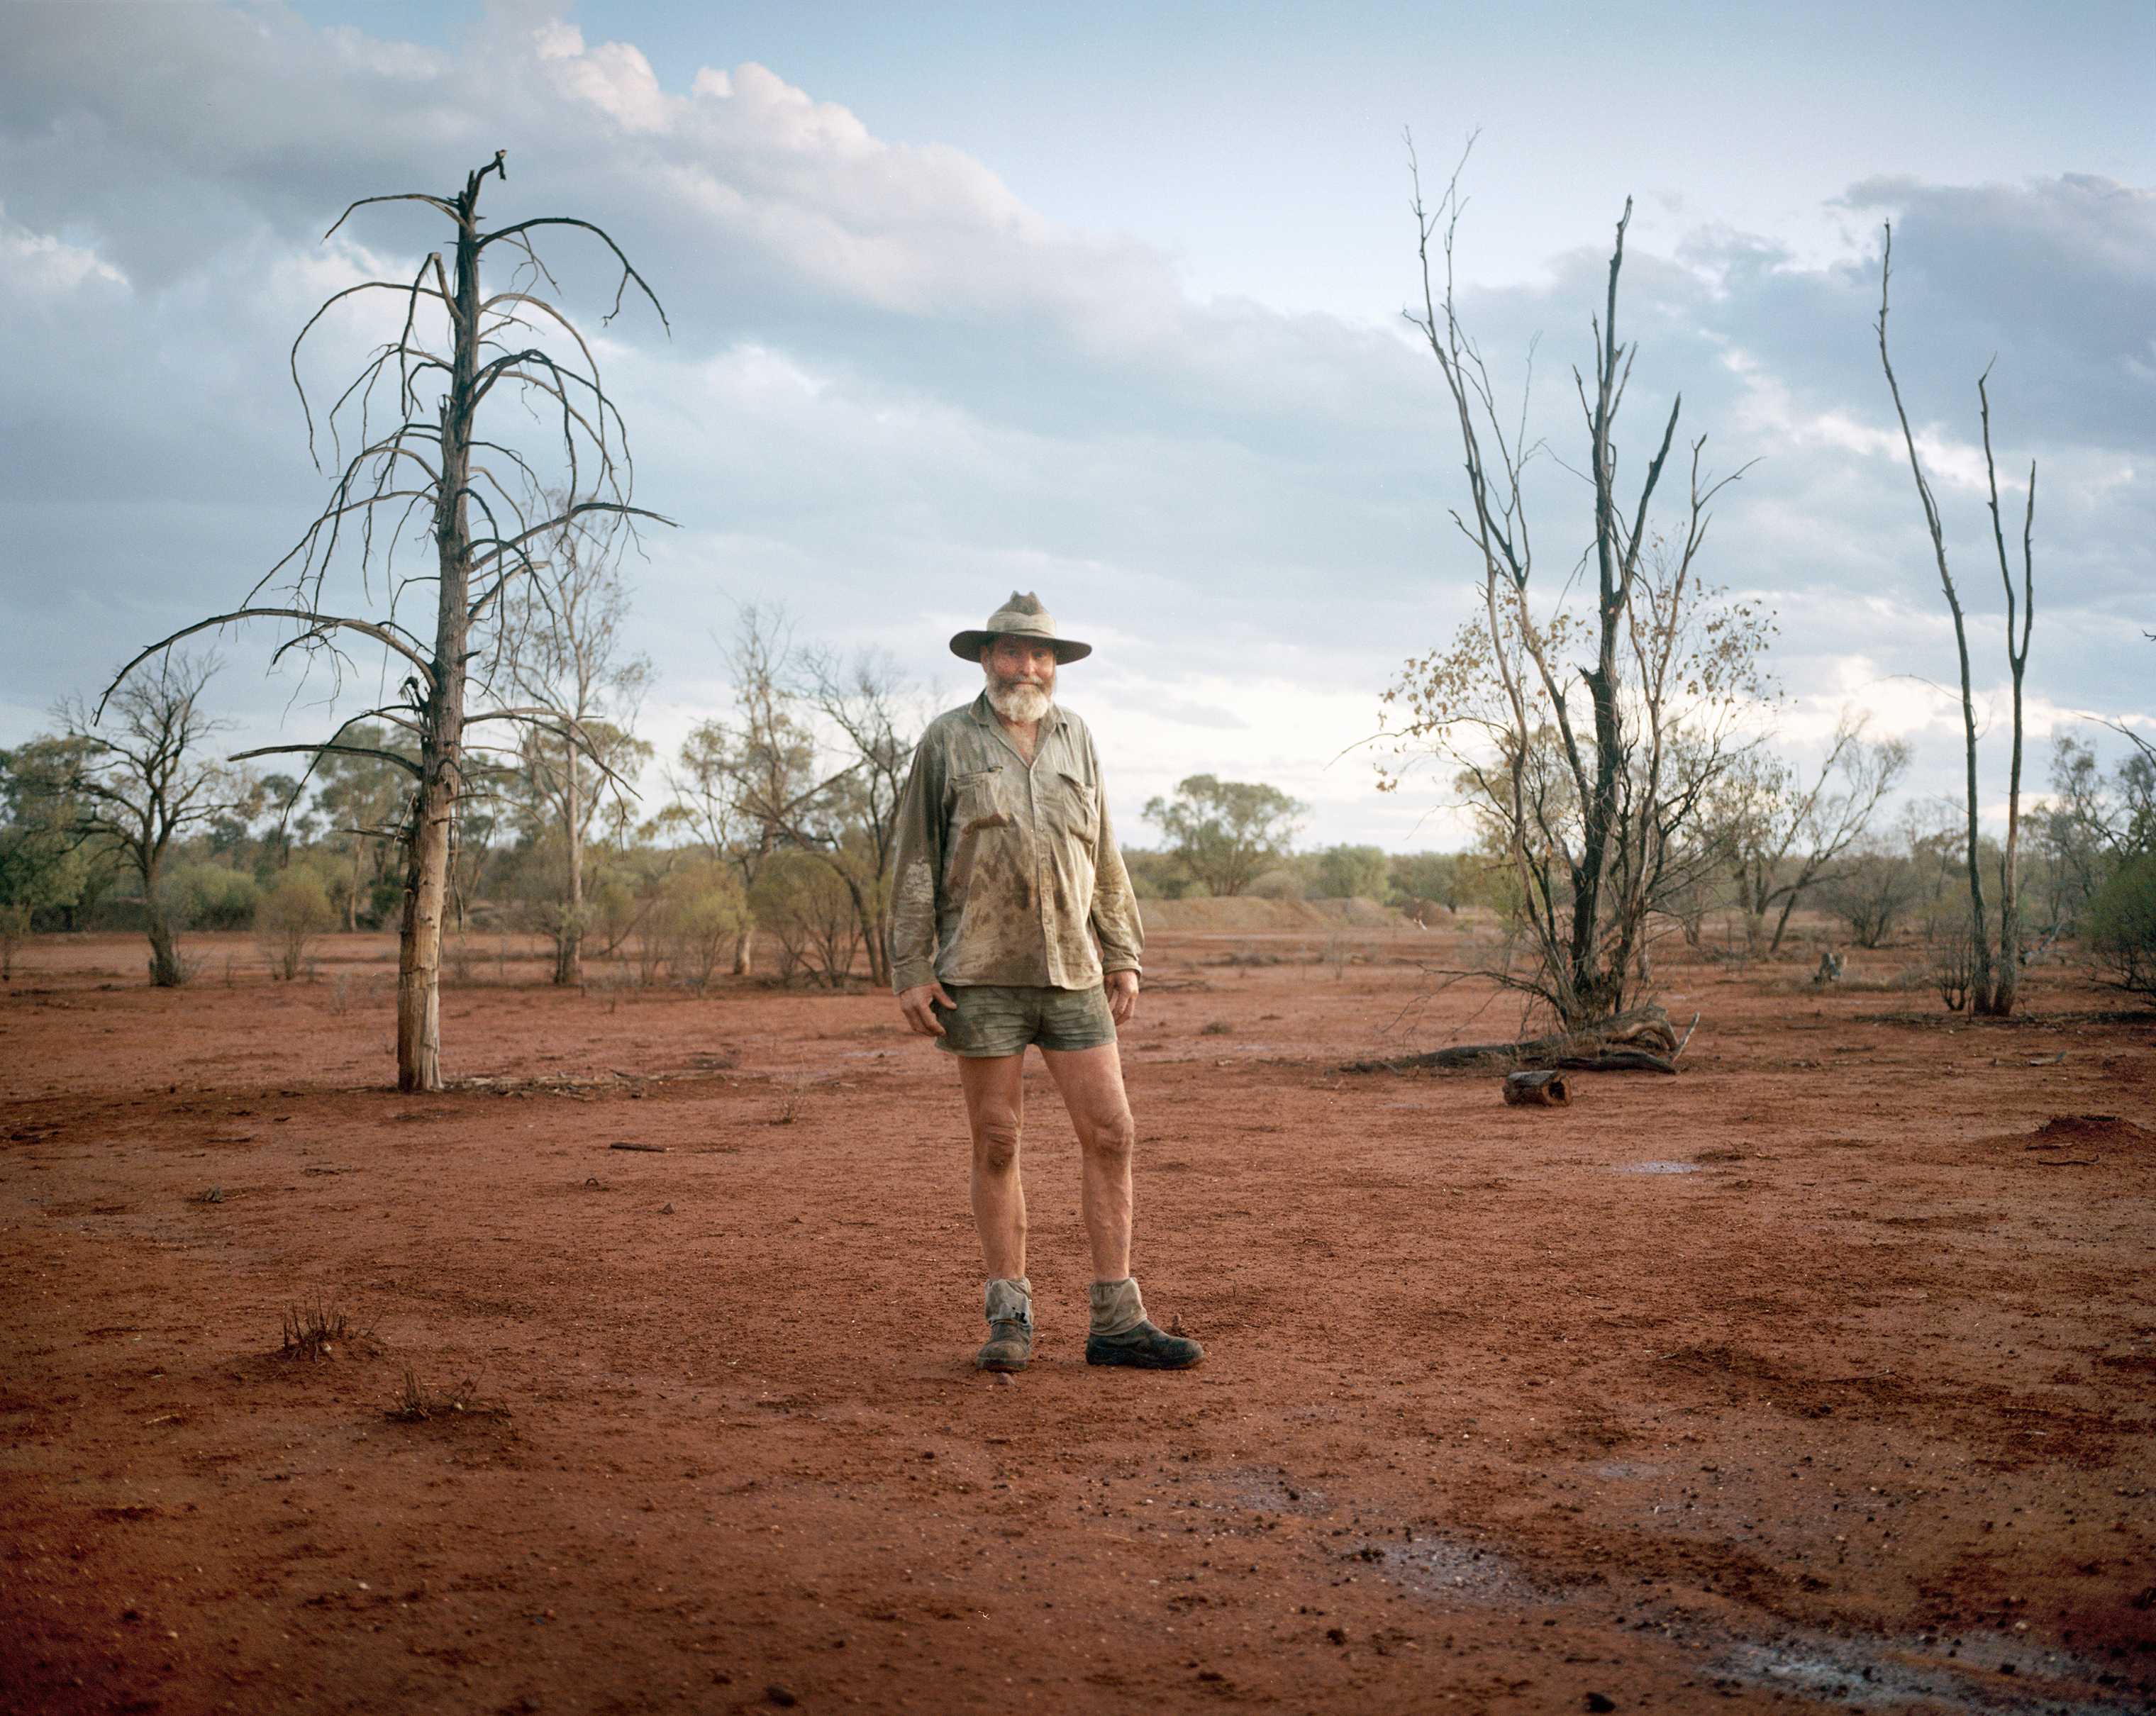 James Foster, a farmer, on Westleigh Property near Walgett, New South Wales, in December 2018. Foster is the third generation of his family to own and work Westleigh.